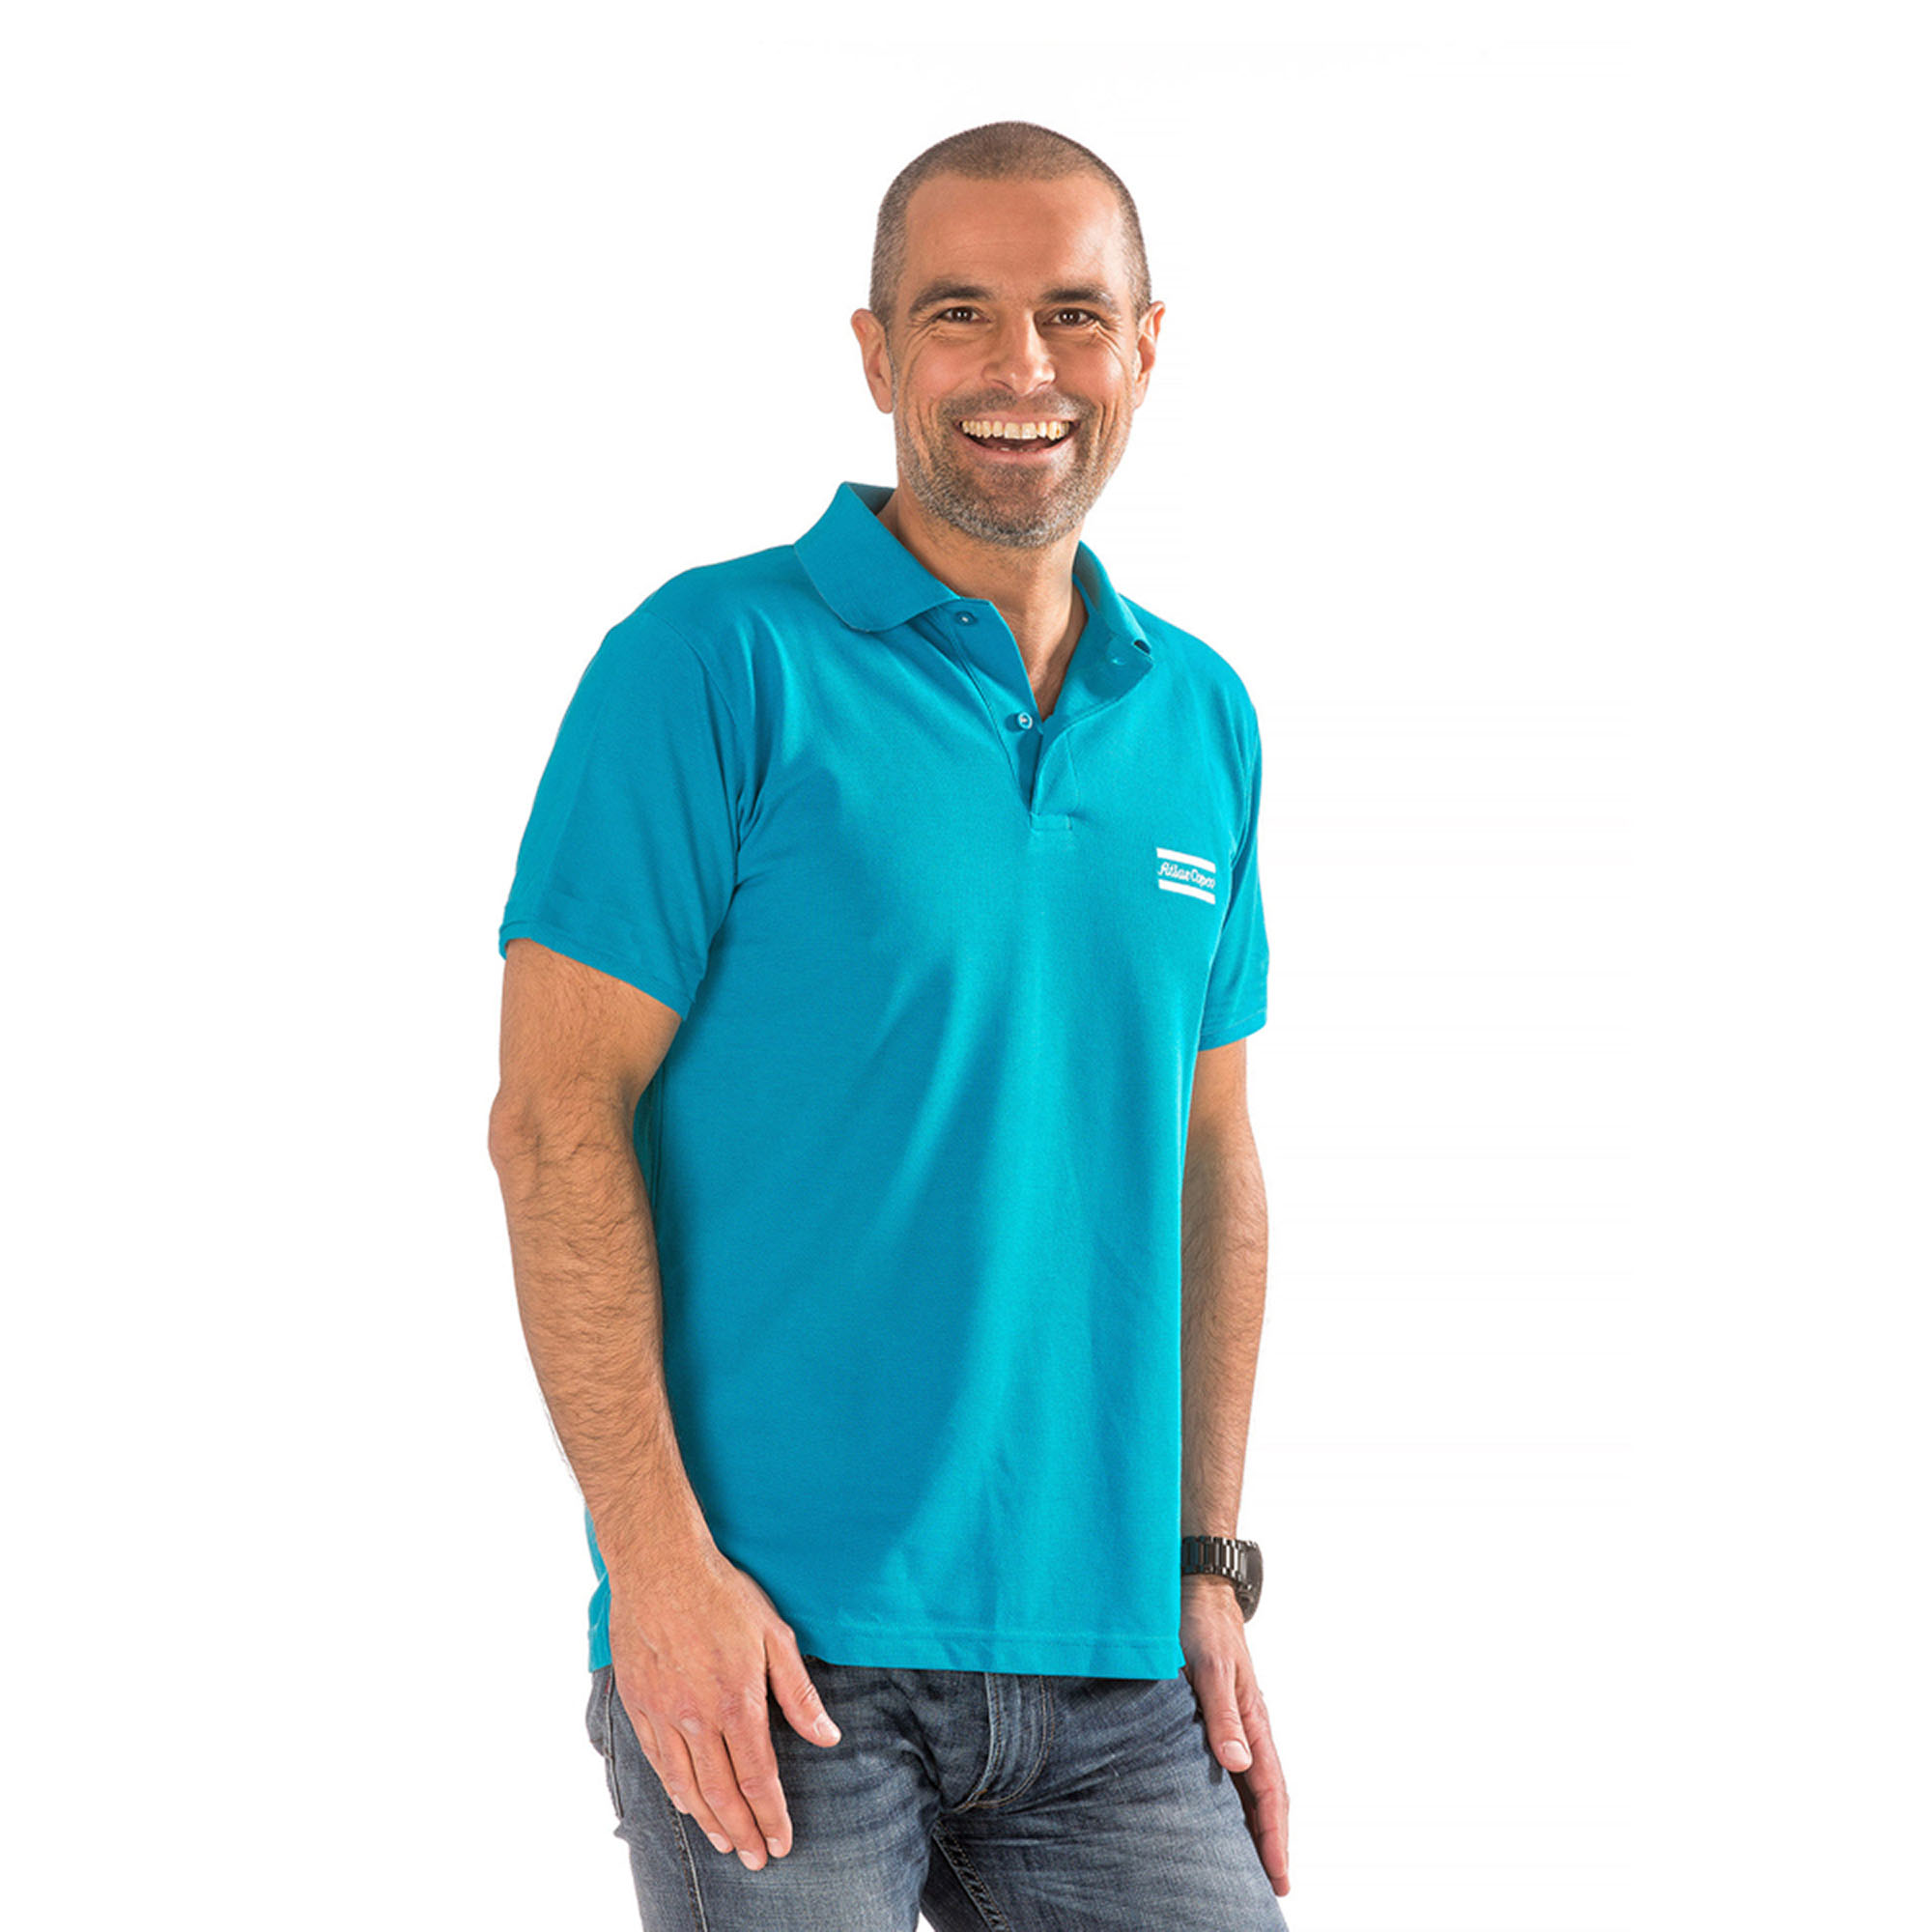 Classic fitting short sleeved polo shirt in breathable, durable cotton mesh. Three button placket.